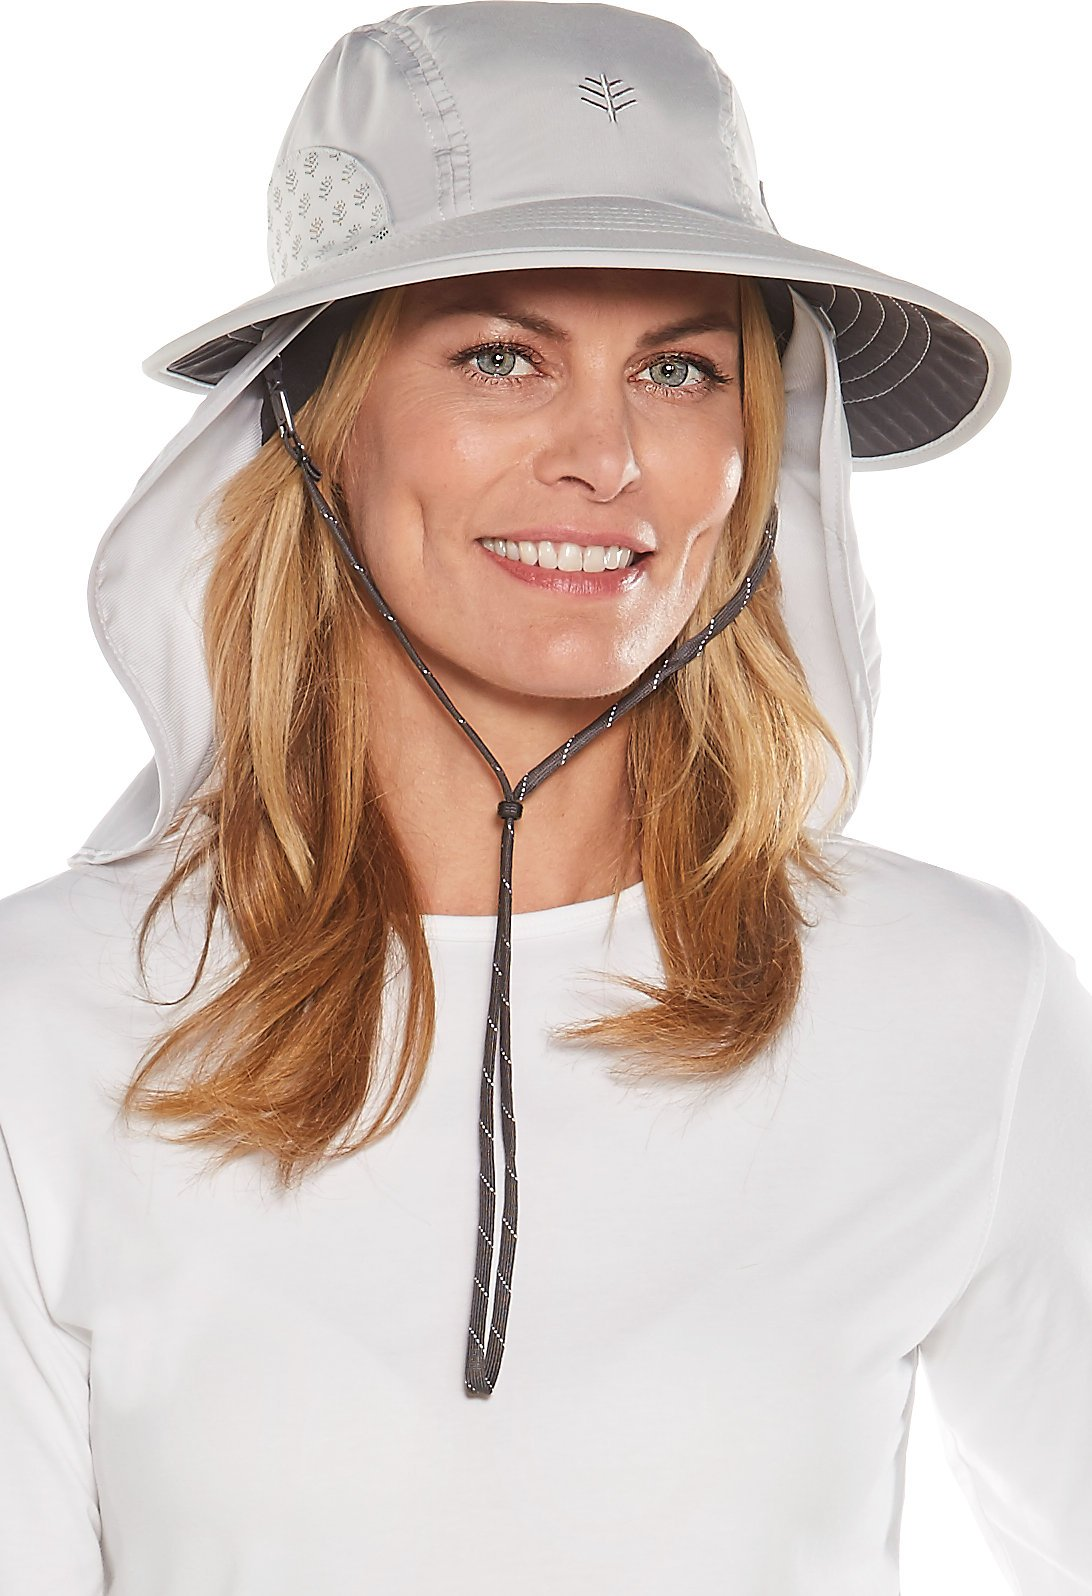 Coolibar UPF 50+ Women's Men's Explorer Hat - Sun Protective (Large/X-Large- Light Grey) by Coolibar (Image #1)